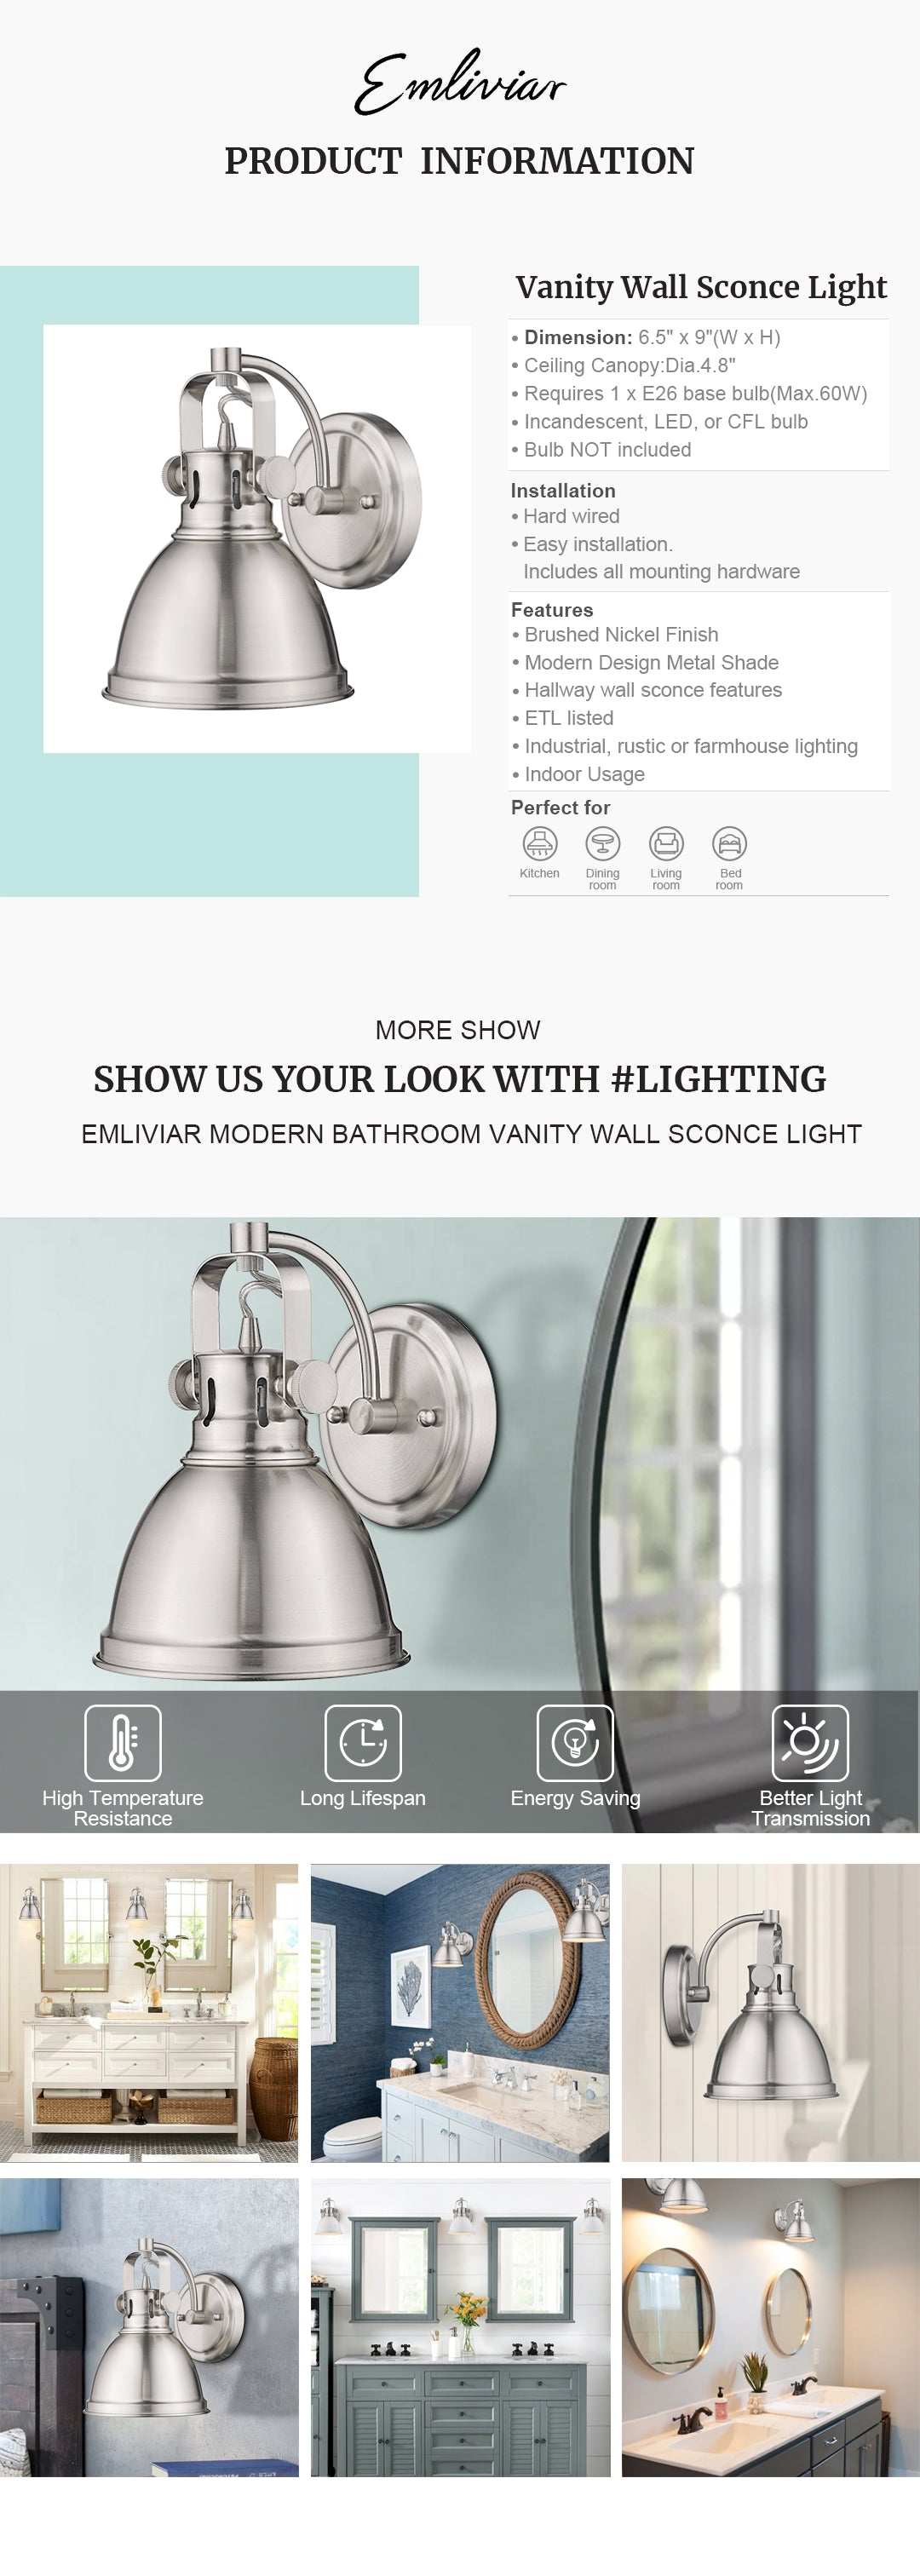 """Modern 1-light hallway wall sconce features metal construction in brushed nickel finish, perfect for industrial, rustic or farmhouse lighting Perfect for your bathroom, bedroom, dining room, kitchen, living room, corridor, entryway Hard wired. Requires 1 x E26 base bulb(Max.60W). Bulb NOT included. Compatible with LED bulb, Incandescent or CFL bulb Easy installation. Includes all mounting hardware. ETL Listed with a one-year warranty Dimension: 6.5"""" x 9""""(W x H); Extends 8.3"""" from the wall; Back Plate: 4.8"""" in dia"""